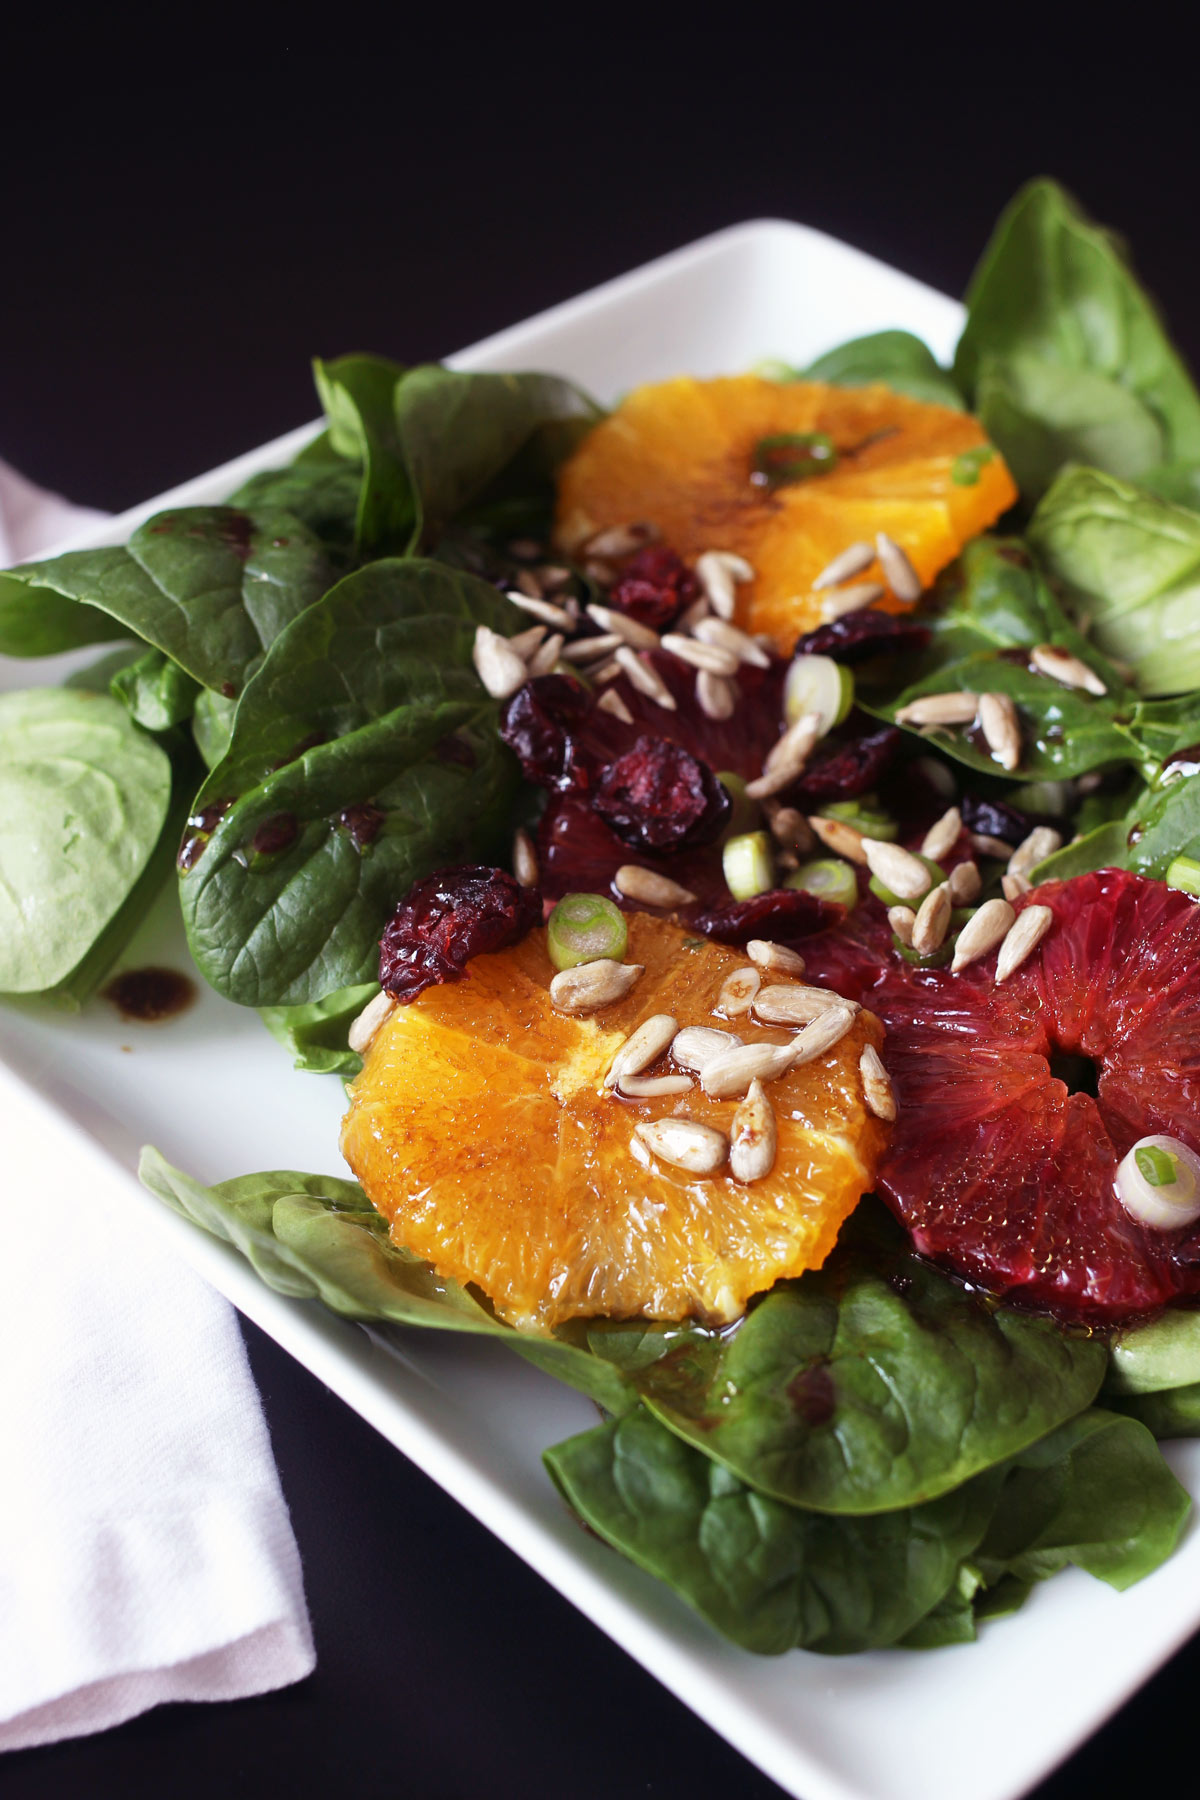 close-up of citrus fruit and sunflower seeds atop a spinach salad on a white plate.